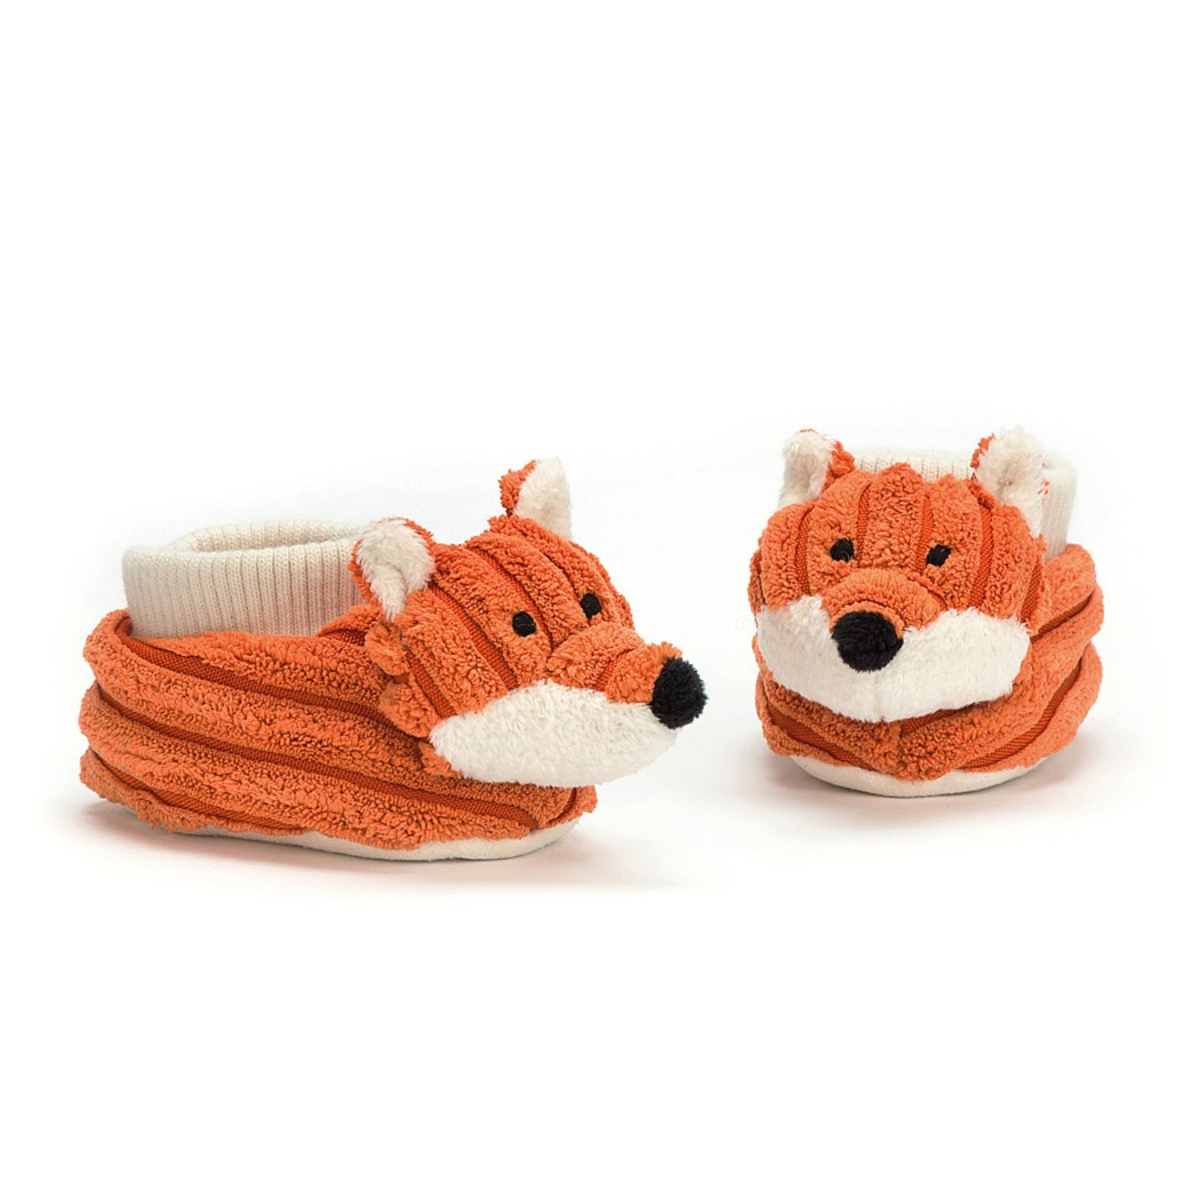 Chaussons & Chaussures Chaussons Cordy Roy Fox Booties - 16/17 Chaussons Cordy Roy Fox Booties - 16/17